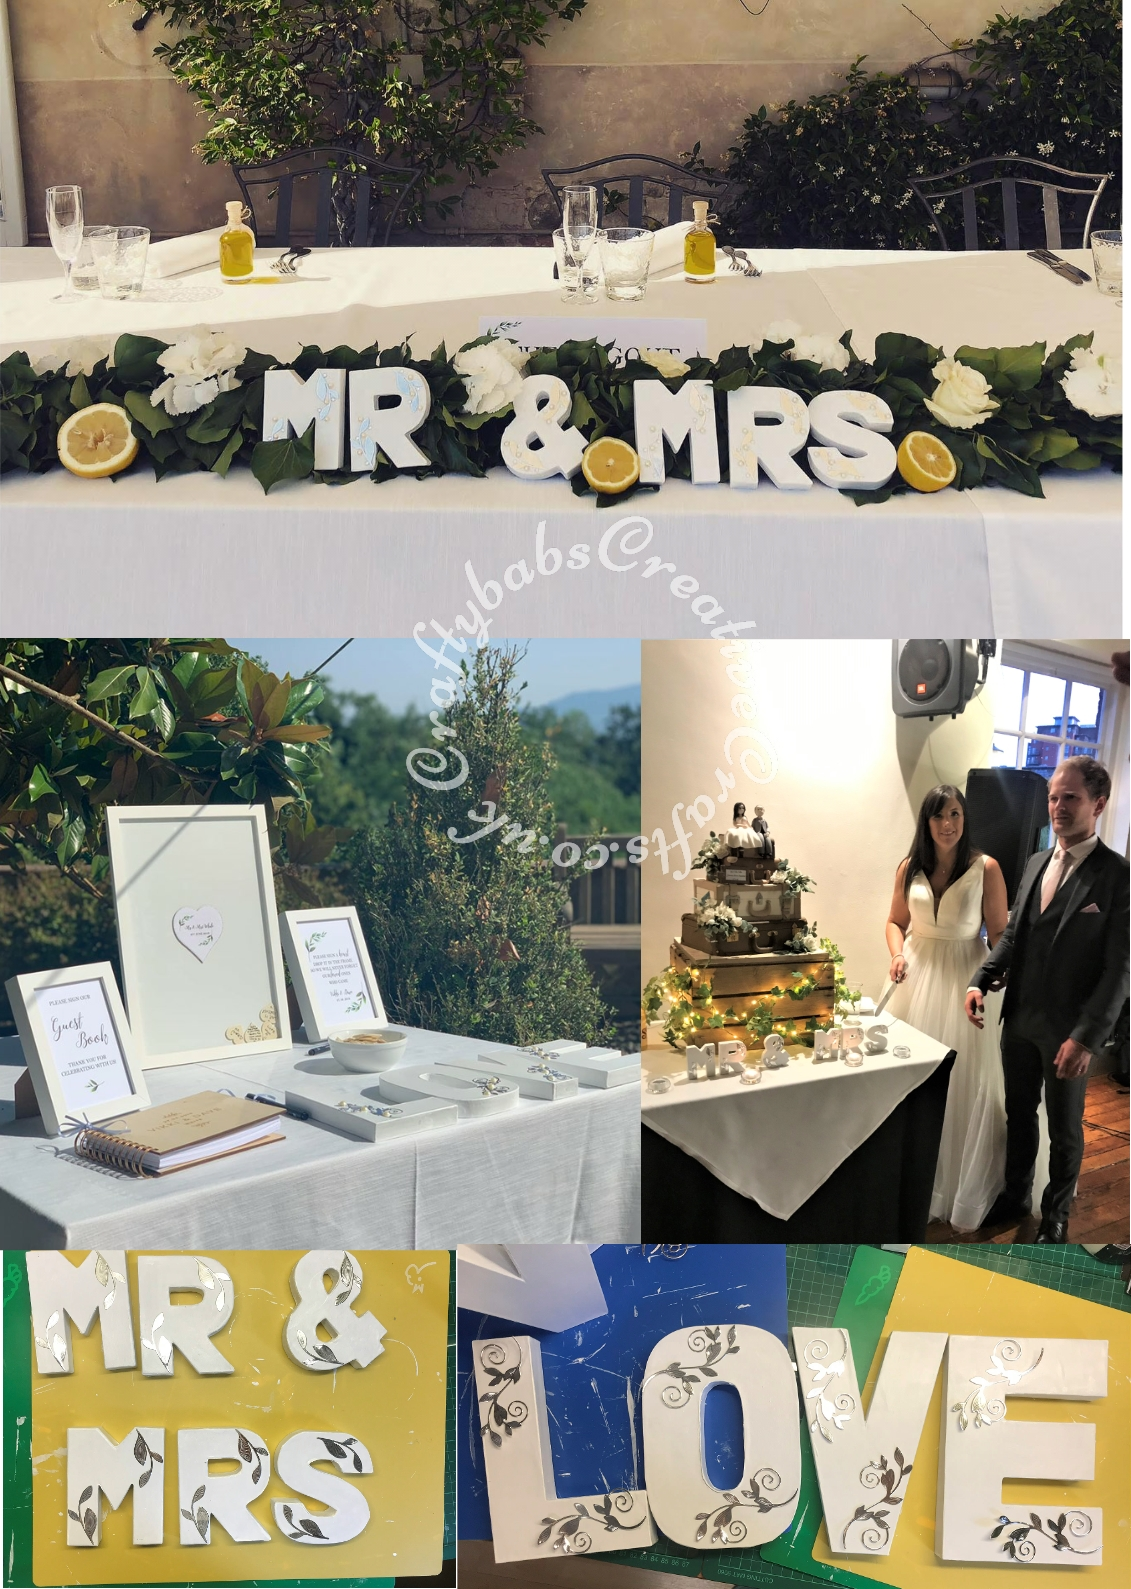 Large L O V E and MR & MRS table decorations made using shop bought brown letters painted white and decorated with silver die cuts using Spellbinders romantic vines dies and varying sizes of flat backed pearl gems. - craftybabscreativecrafts.co.uk